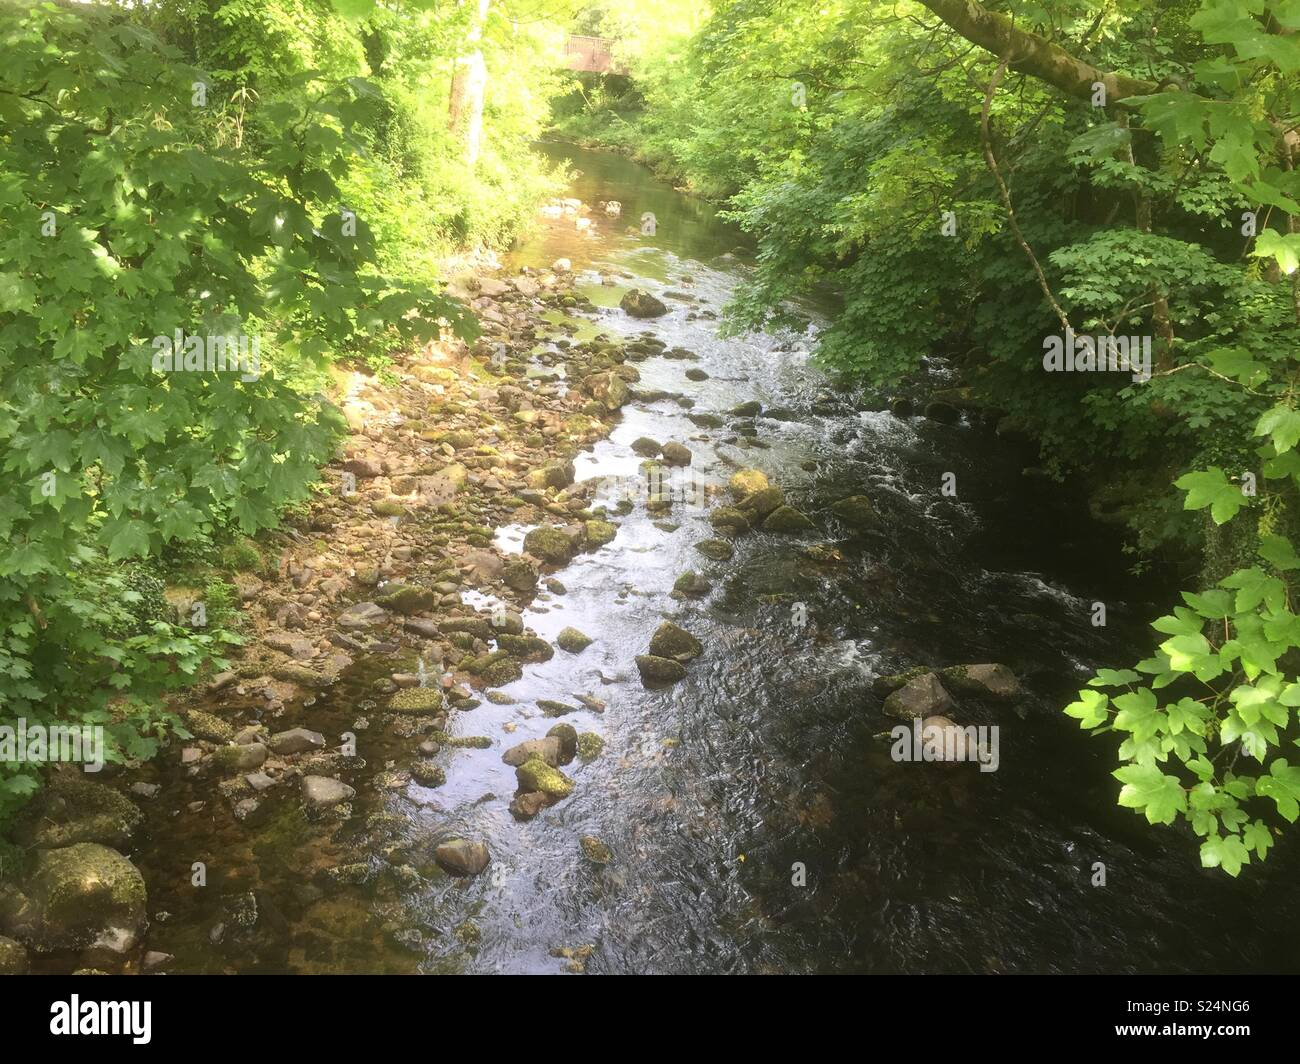 The River Erme, Ivybridge - Stock Image